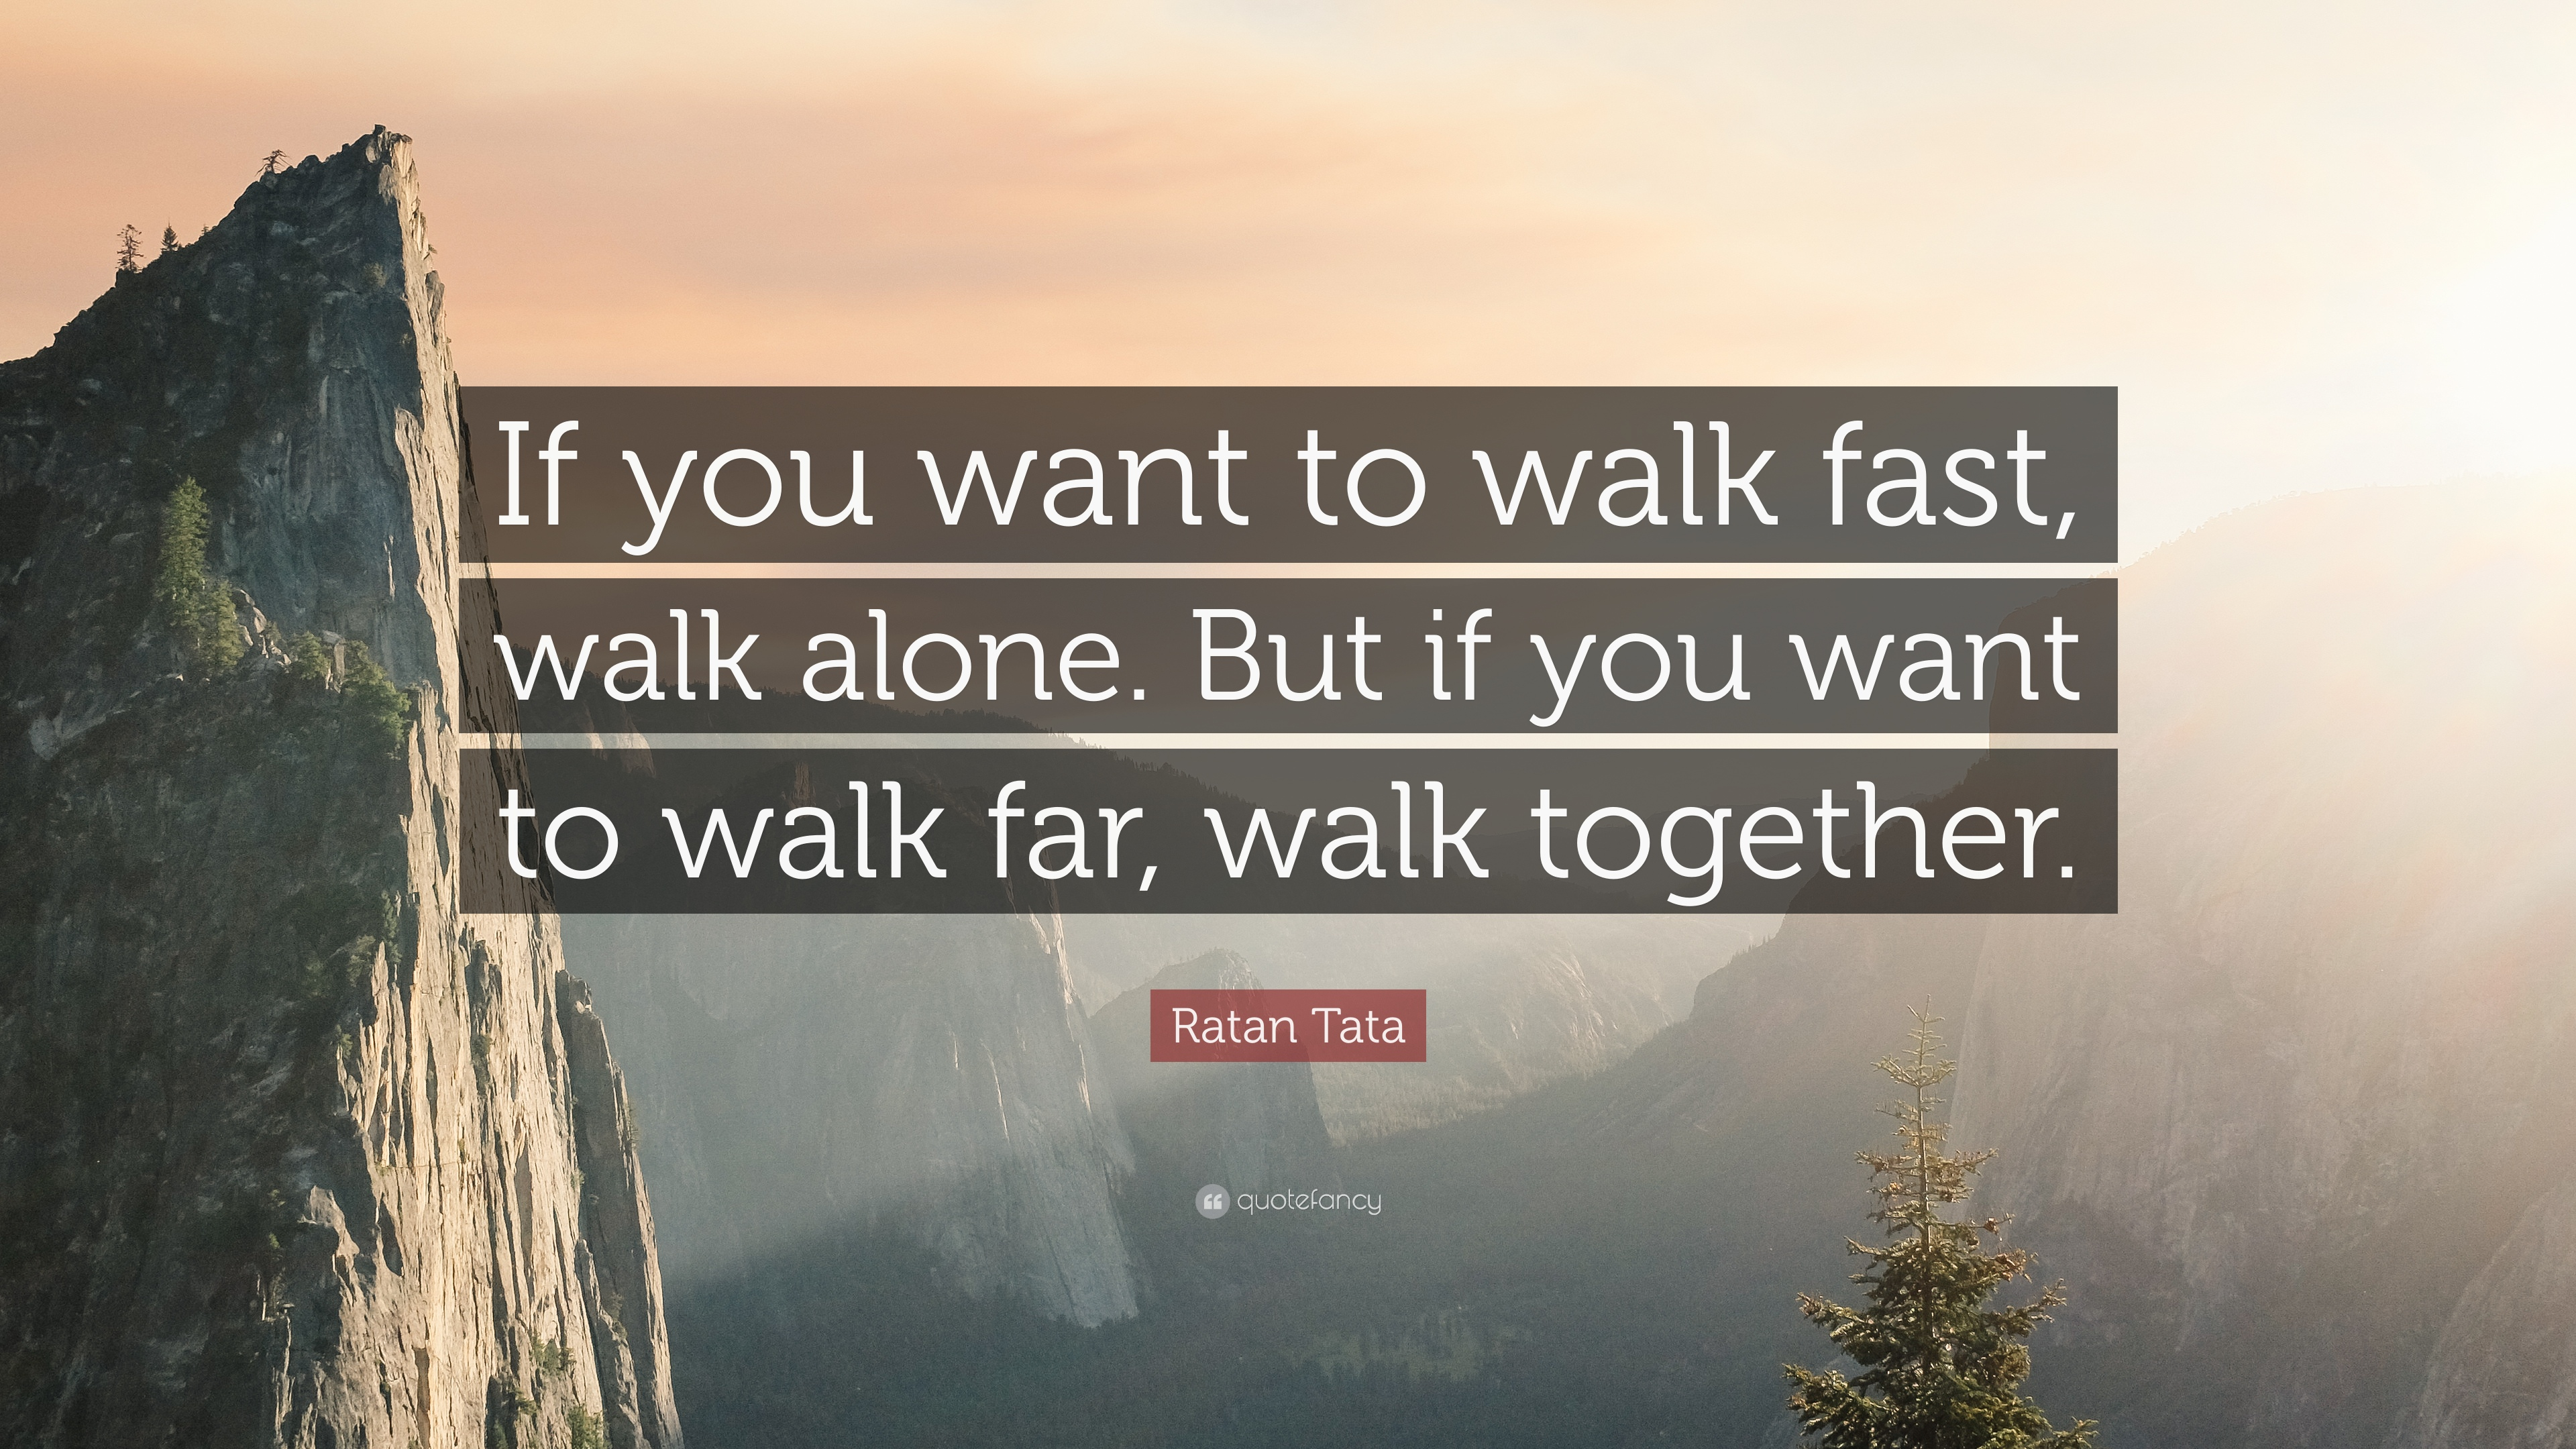 Ratan Tata Quote If You Want To Walk Fast Walk Alone But If You Want To Walk Far Walk Together 12 Wallpapers Quotefancy